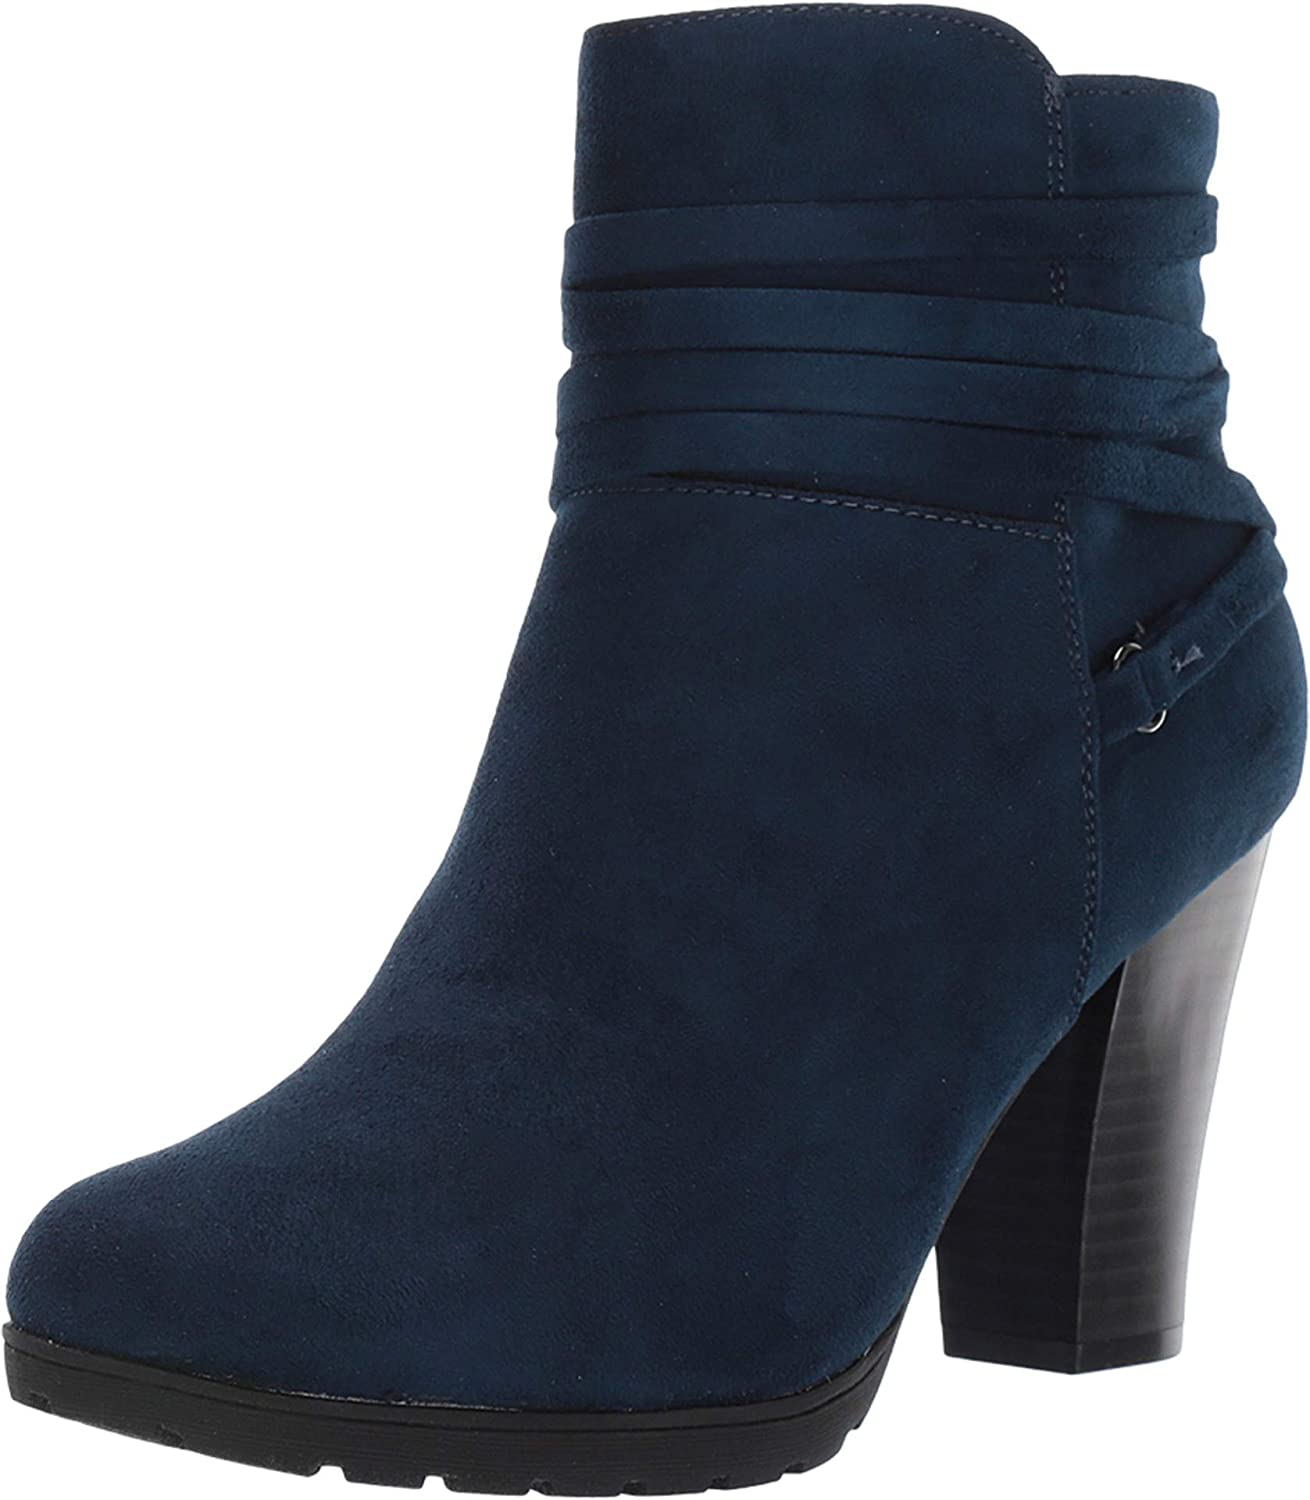 Rialto Women's Spade Popular overseas Midnight Suedette 9.5 Boot Be super welcome Size Ankle